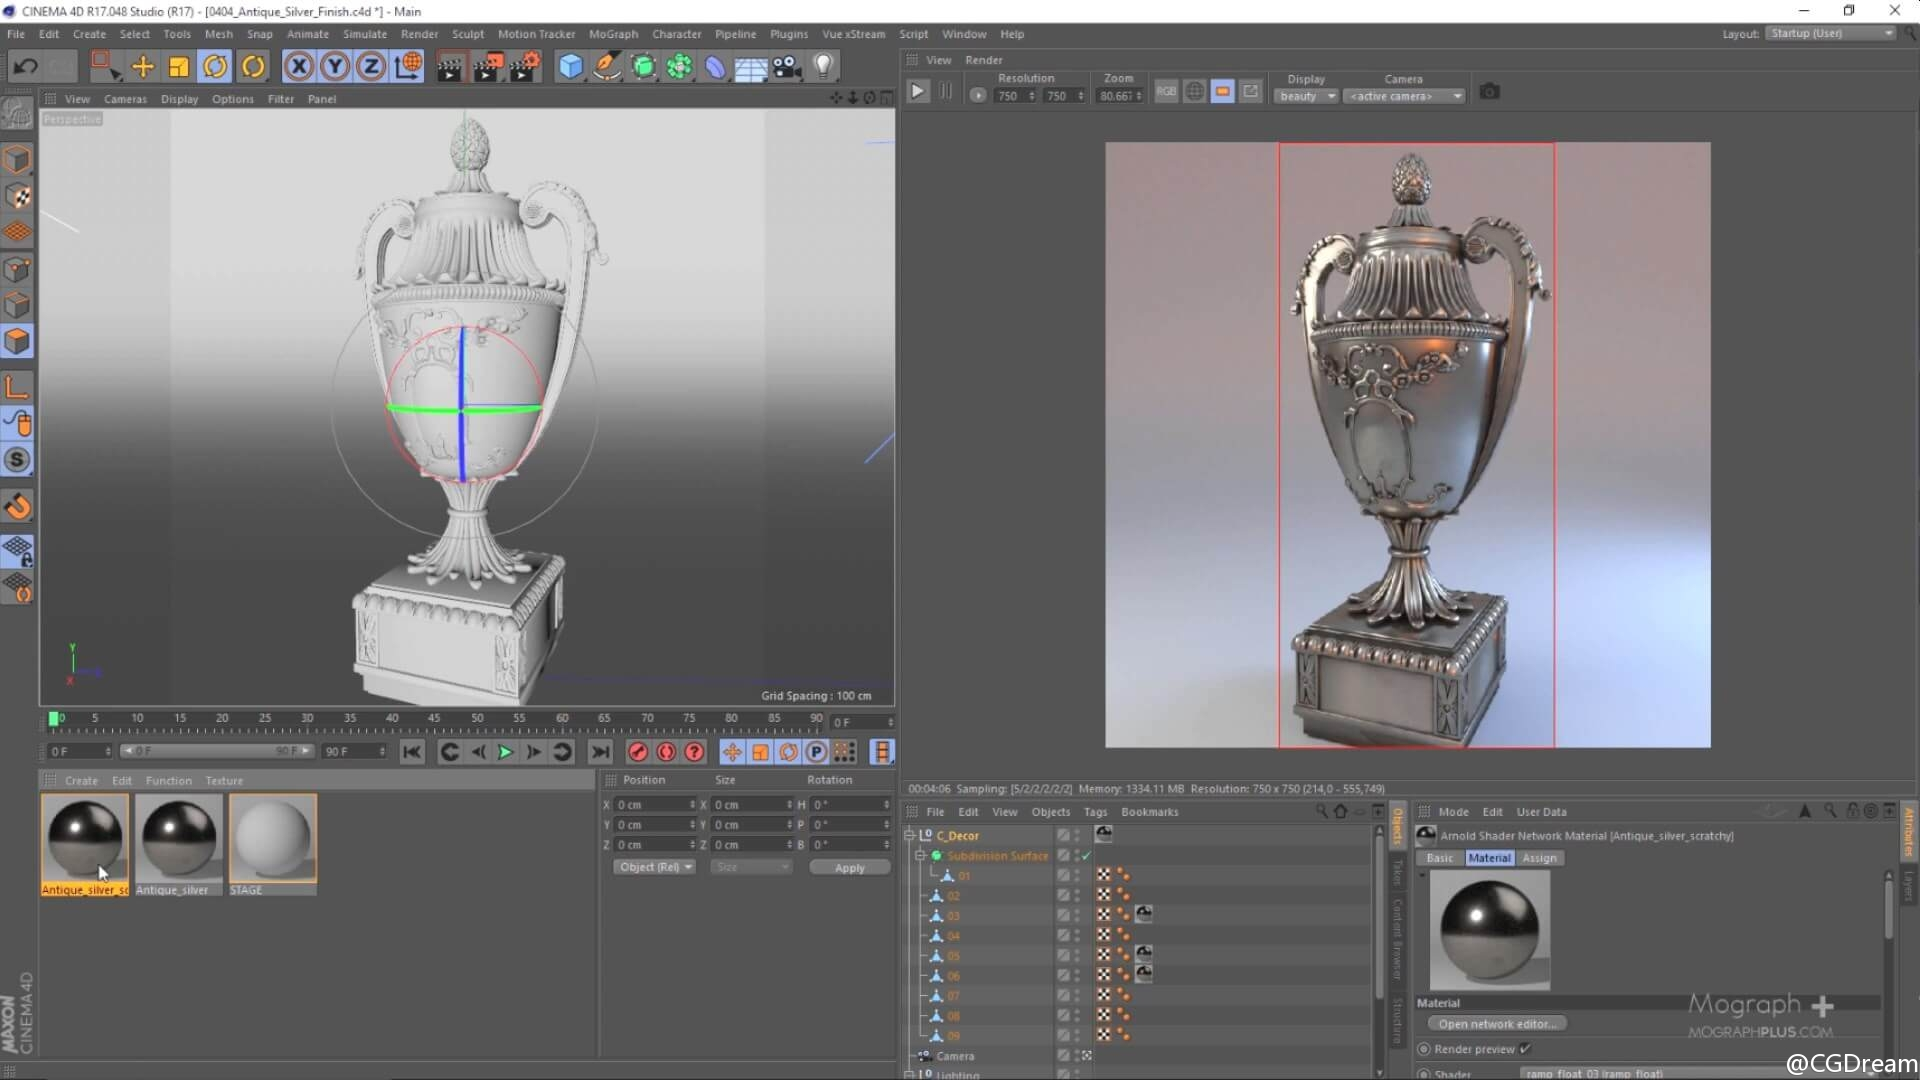 Arnold电影级写实渲染技术视频教程第一部分 - Developing Realistic shaders in Arnold for Cinema 4d Vol. ...